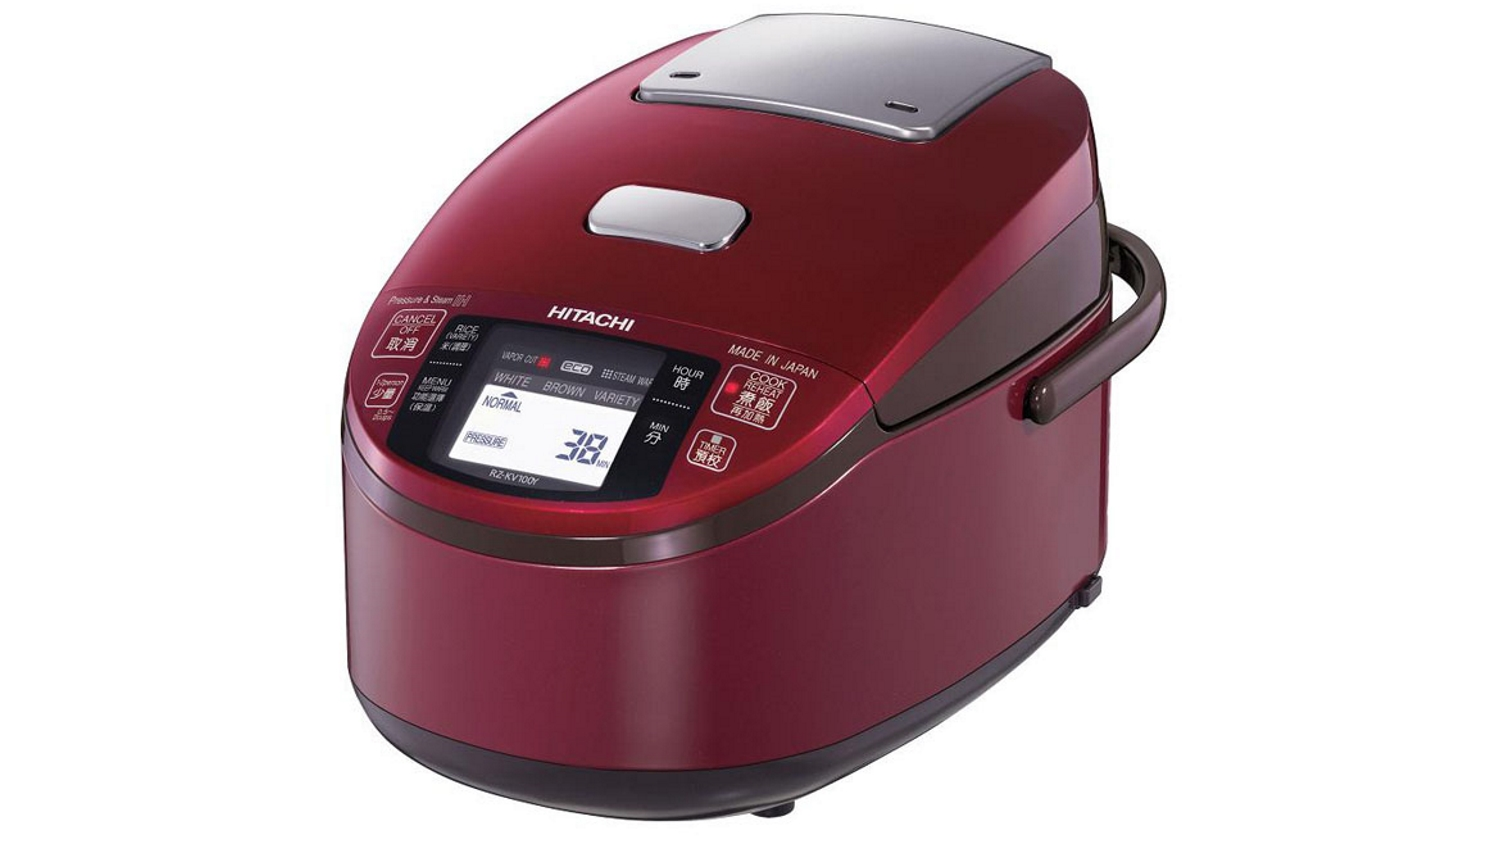 Sofas For Sale Harvey Norman Hitachi Premium Induction Heating Rice Cooker | Harvey